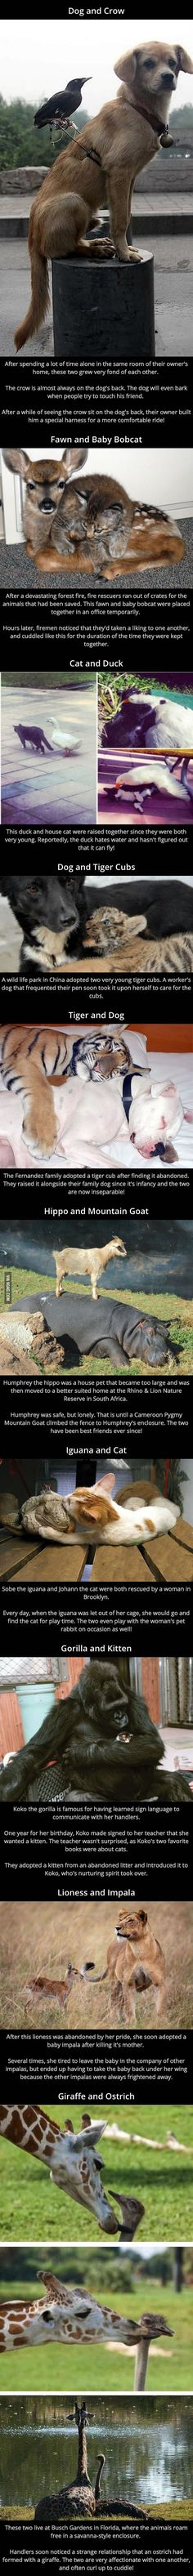 GAGBAY - Unusual Animal Friendships including a dog with a crow perch on his back Unusual Animal Friendships, Unusual Animals, Unusual Pets, Strange Animals, Cute Creatures, Beautiful Creatures, Animals Beautiful, Animals And Pets, Baby Animals